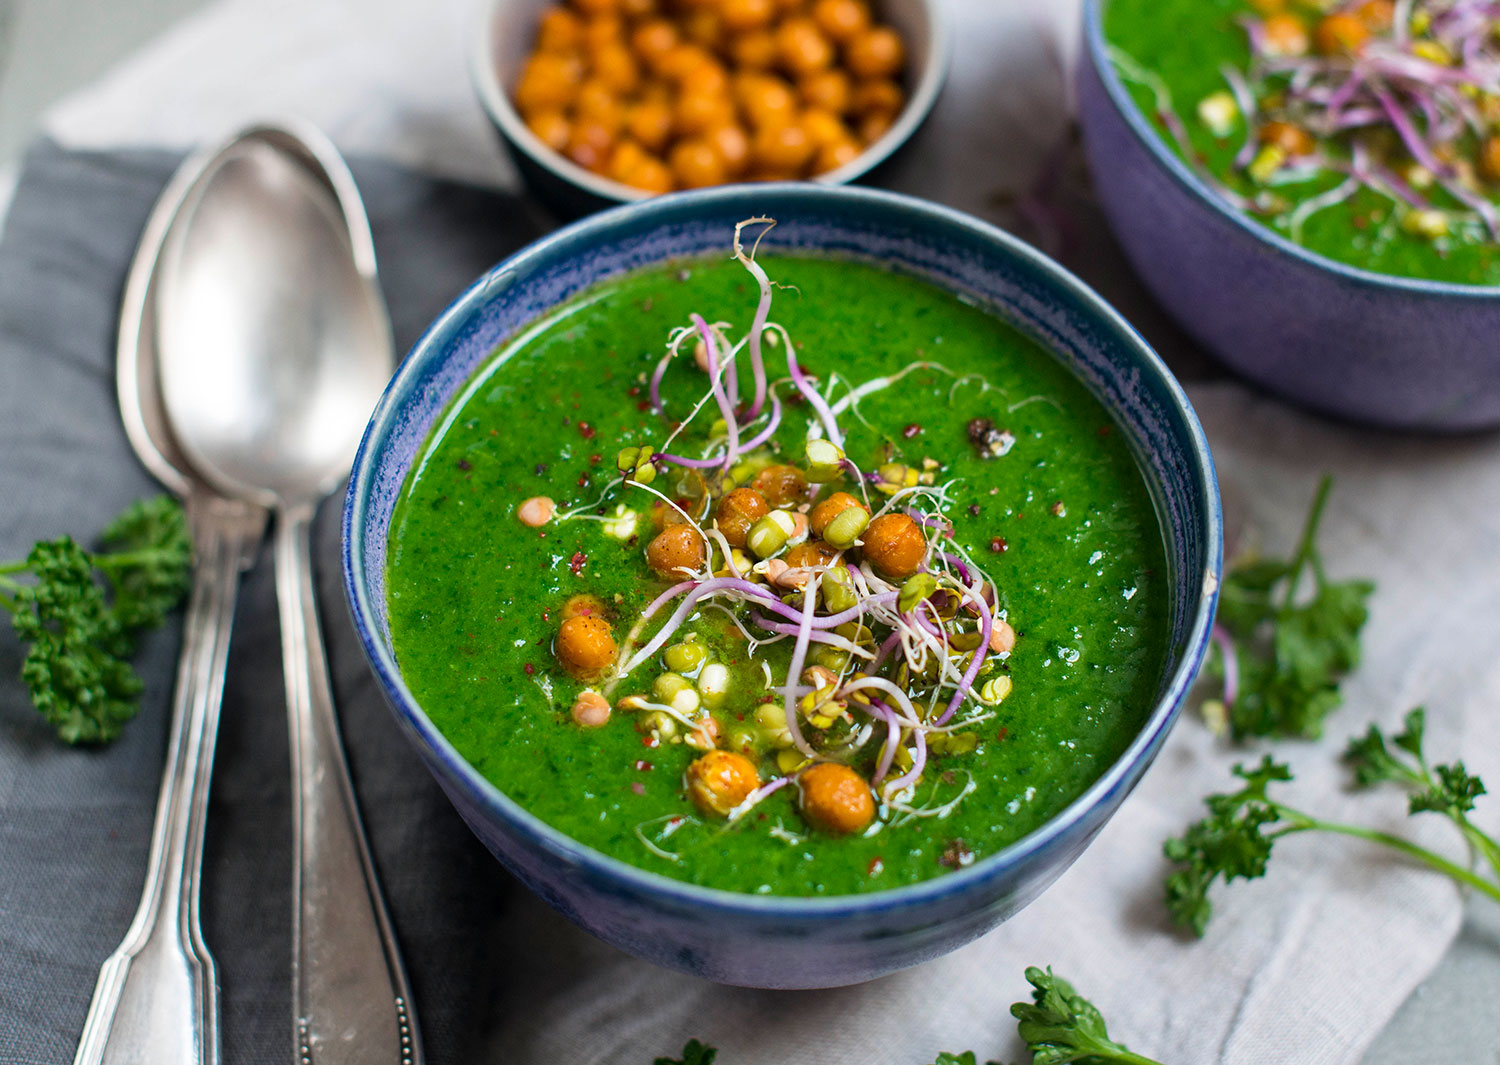 Vegan-spinach-parsley-soup-Florette-Lea-Lou-3